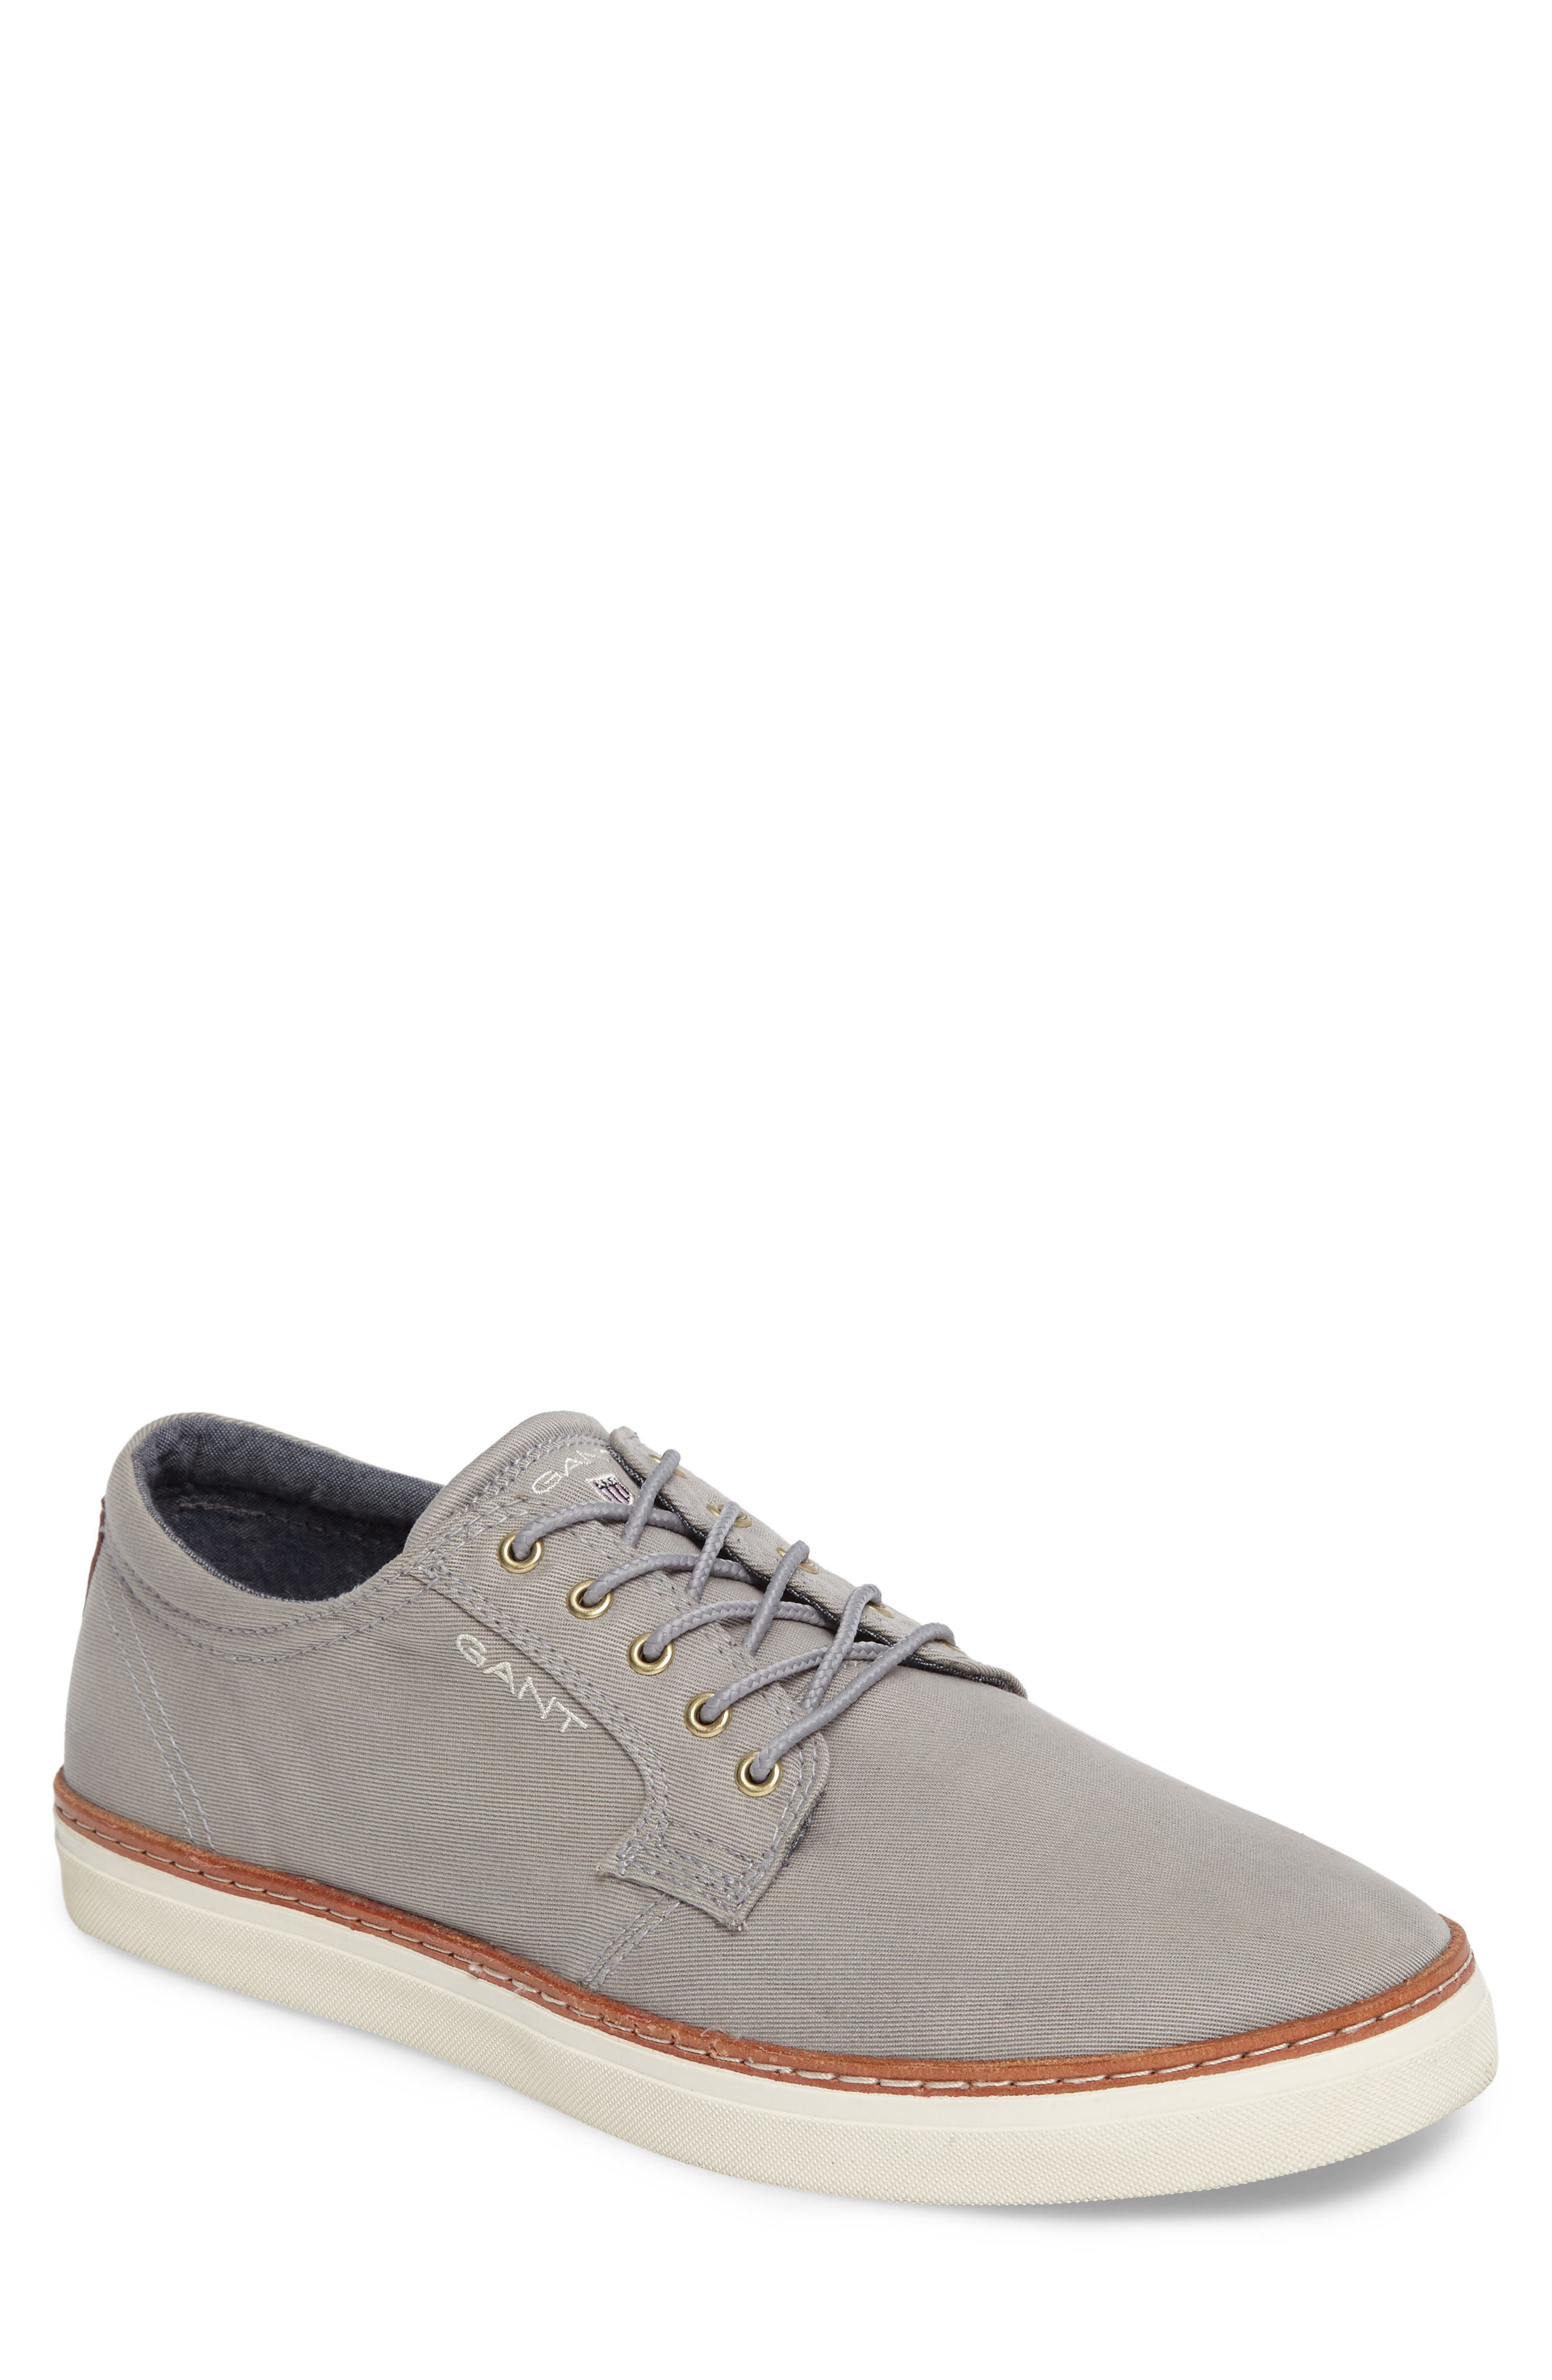 Alternate Image 1 Selected - Gant Bari Sneaker (Men)